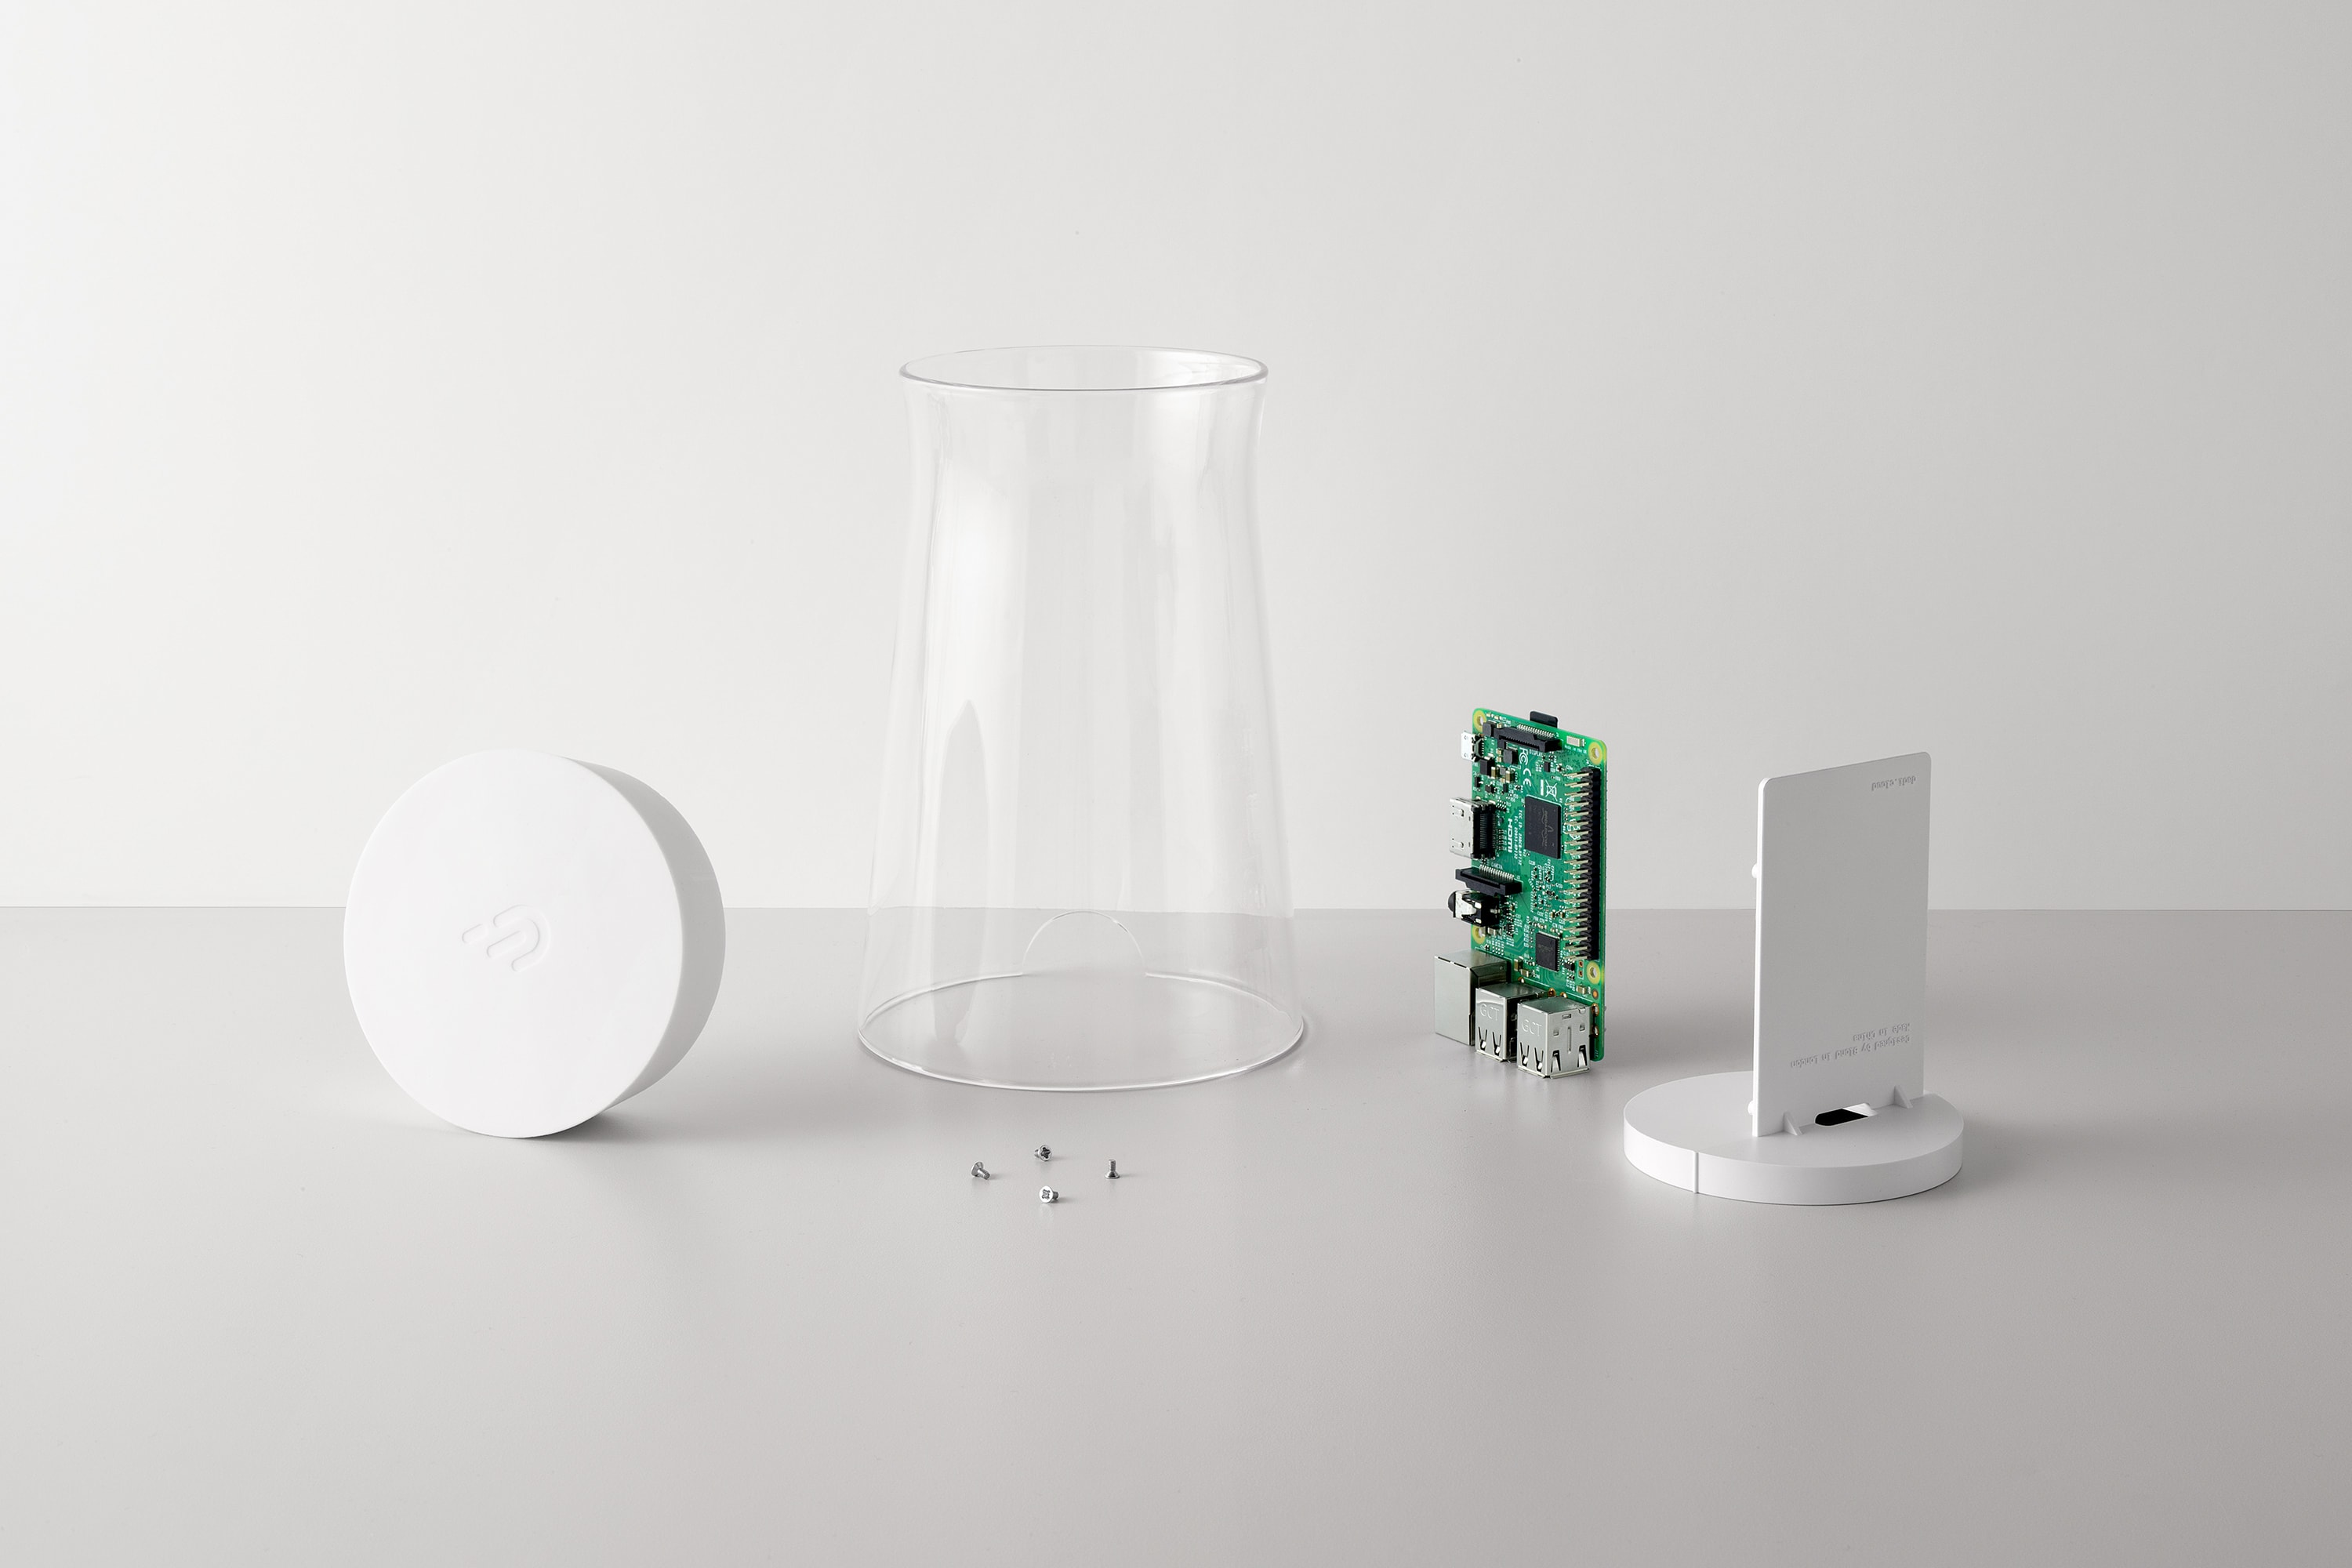 Front view of the DADI Founding Node deconstructed. The components include; a glass casing with a white silicone top, a plastic mounting, a Raspberry Pi circuit board and four small silver screws on a grey surface.